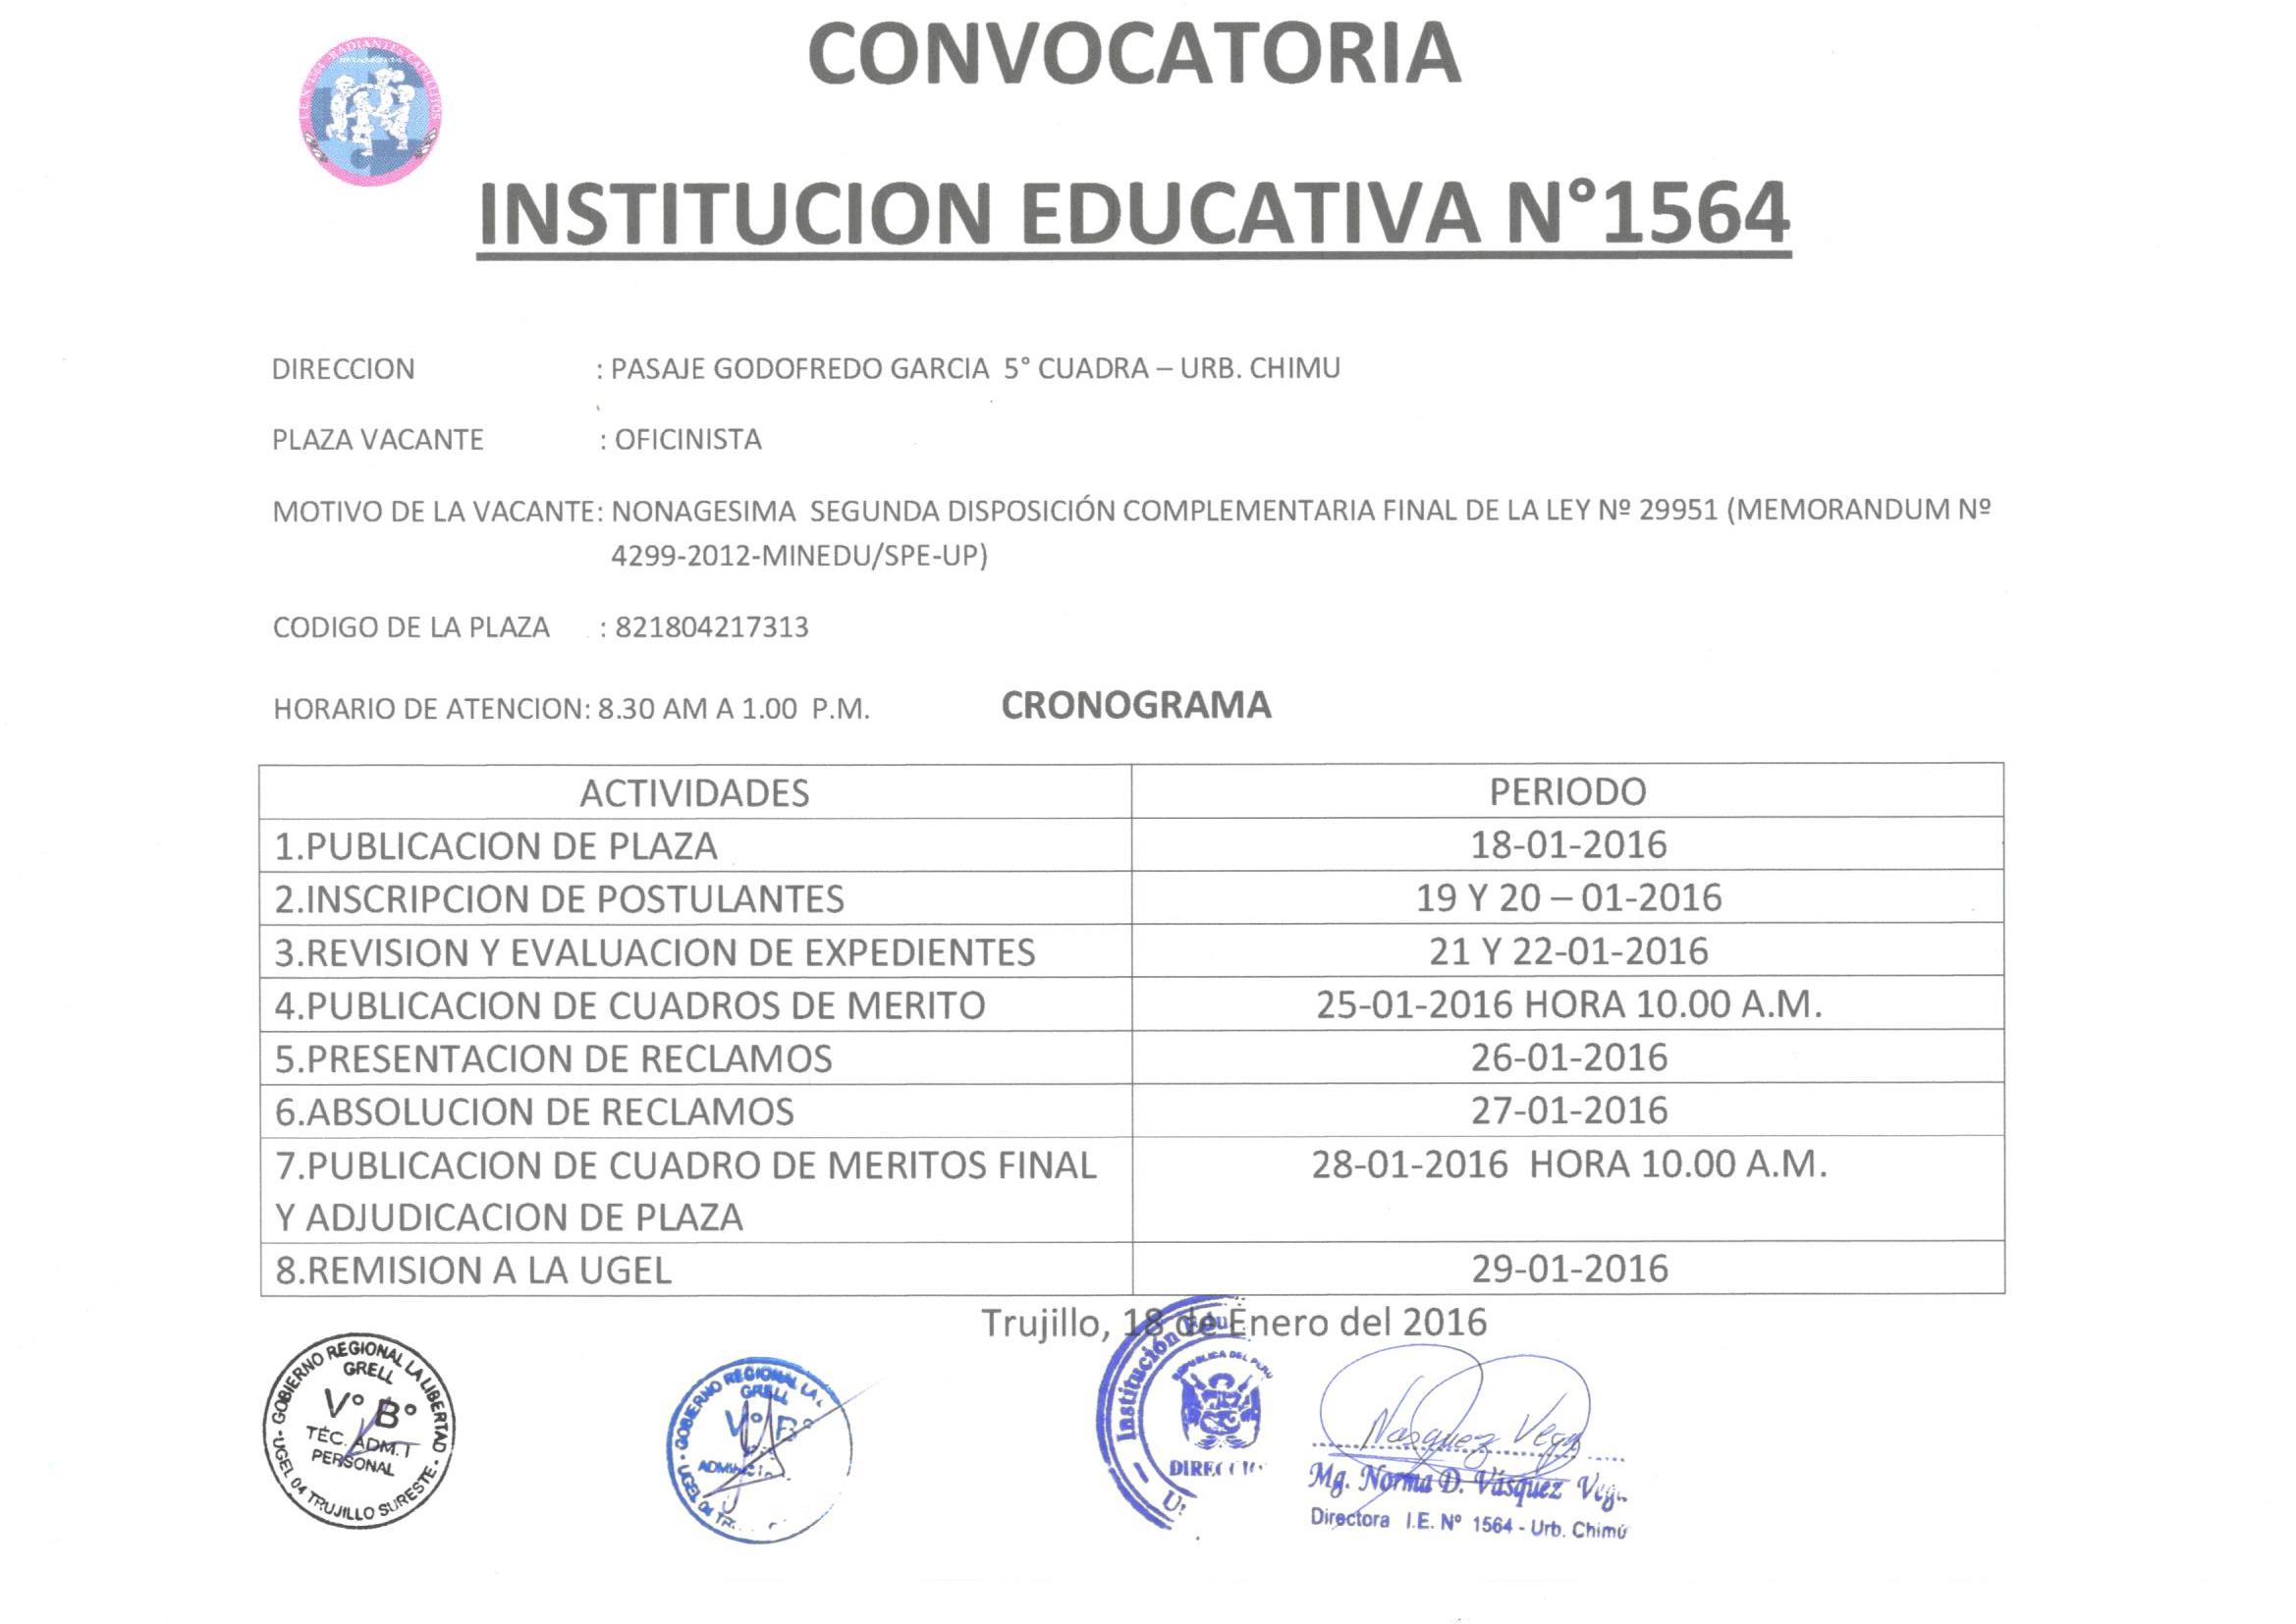 Convocatoria ie 1564 ugel n 04 trujillo sur este for Convocatoria para plazas docentes